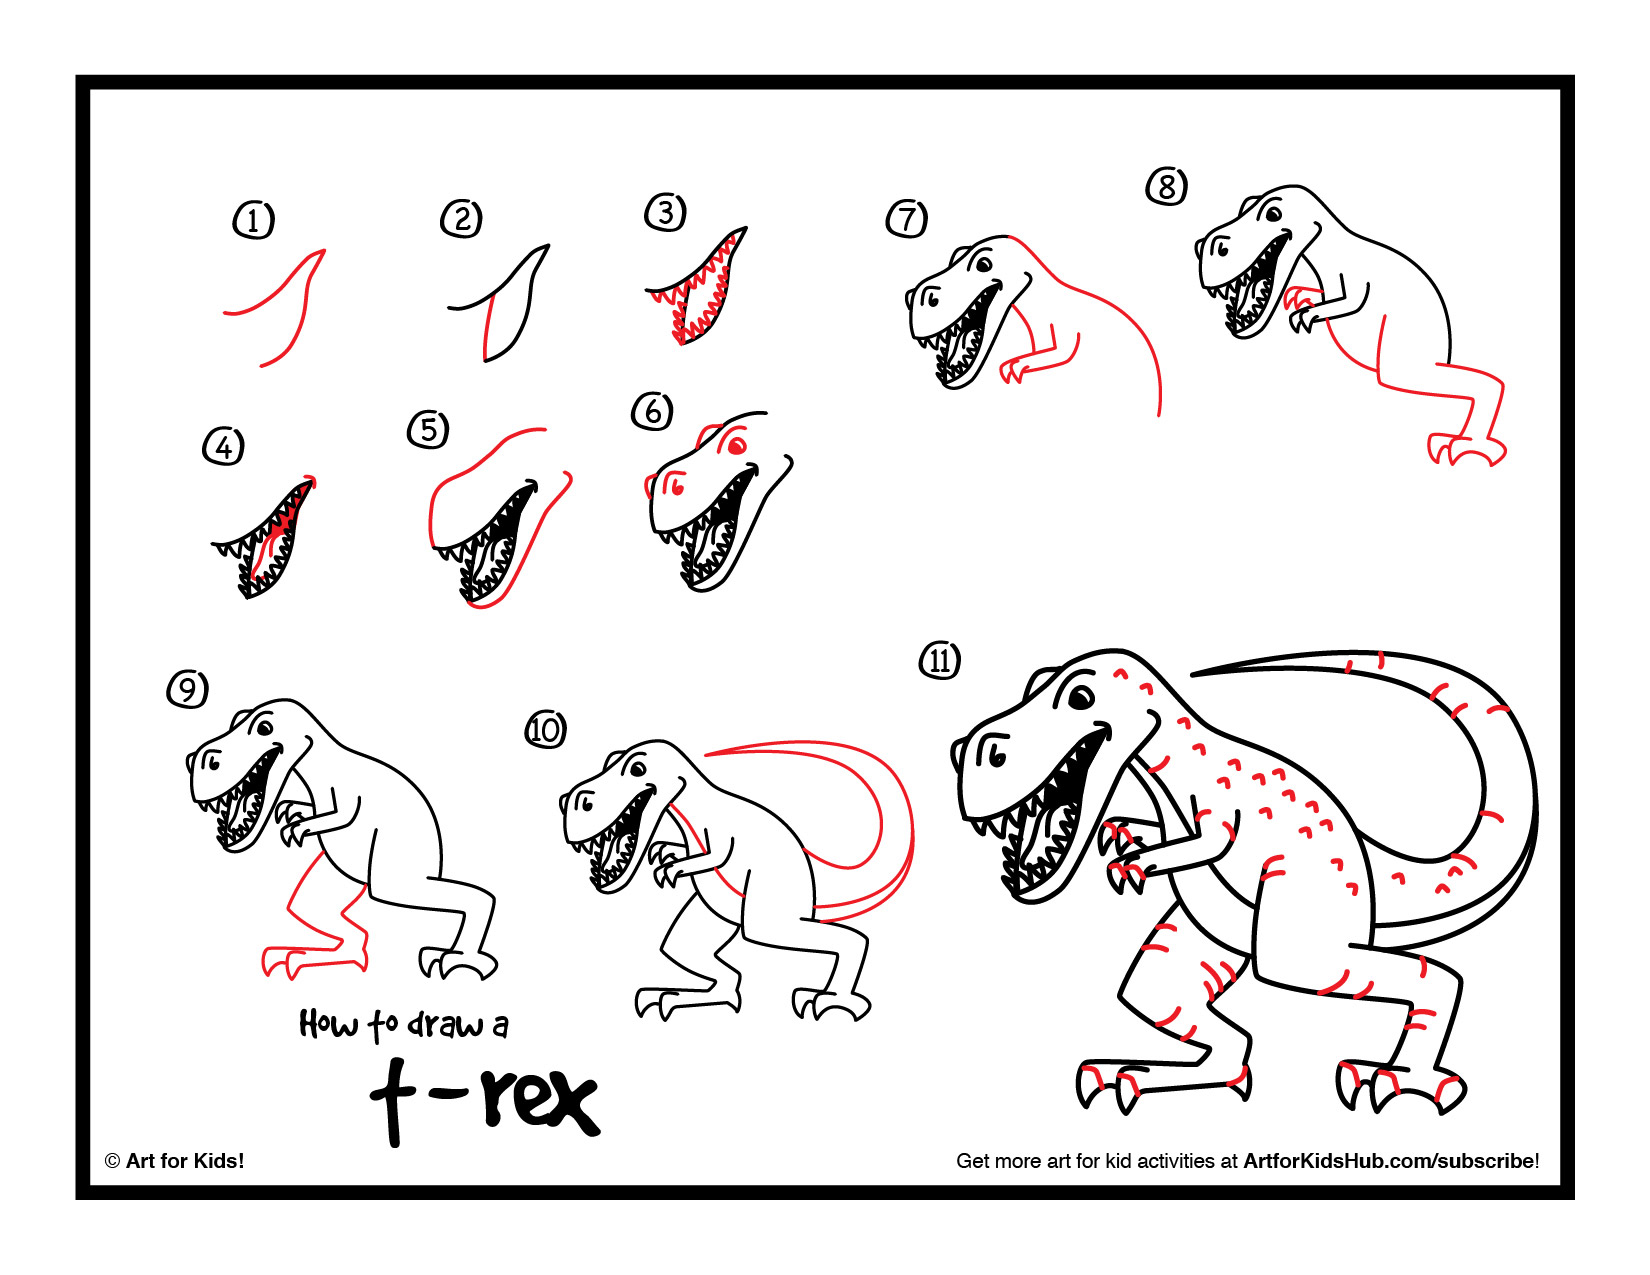 how-to-draw-a-trex